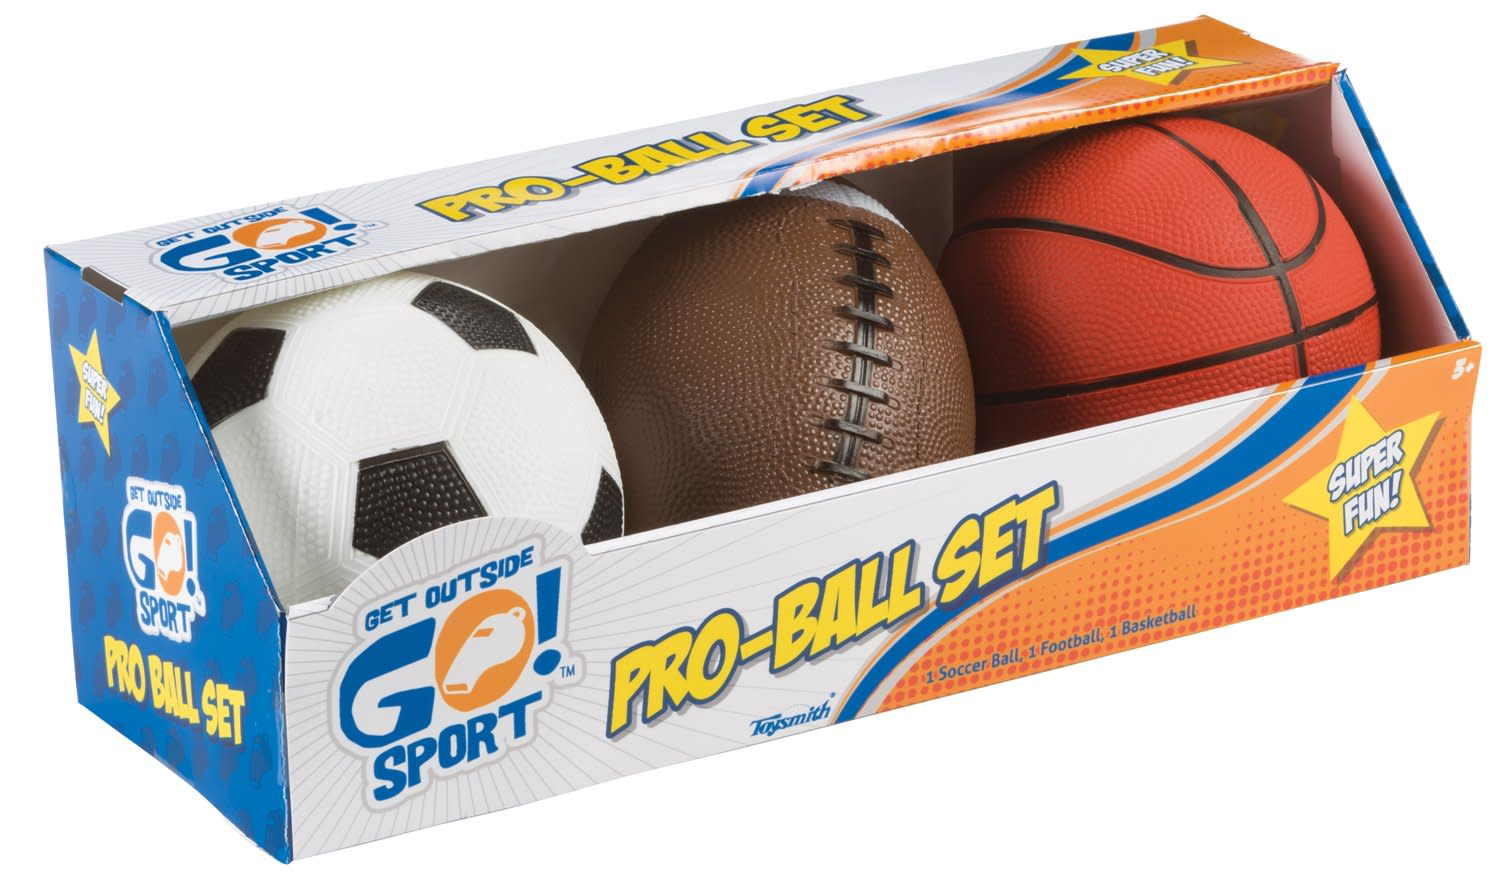 3-in-1 soccer goal, can be used as a soccer goal, rebounder, or target QuickPlay Brands: Goal Sporting Goods, Kwik Goal, Franklin Sports, Tekk, The Net Return and more.